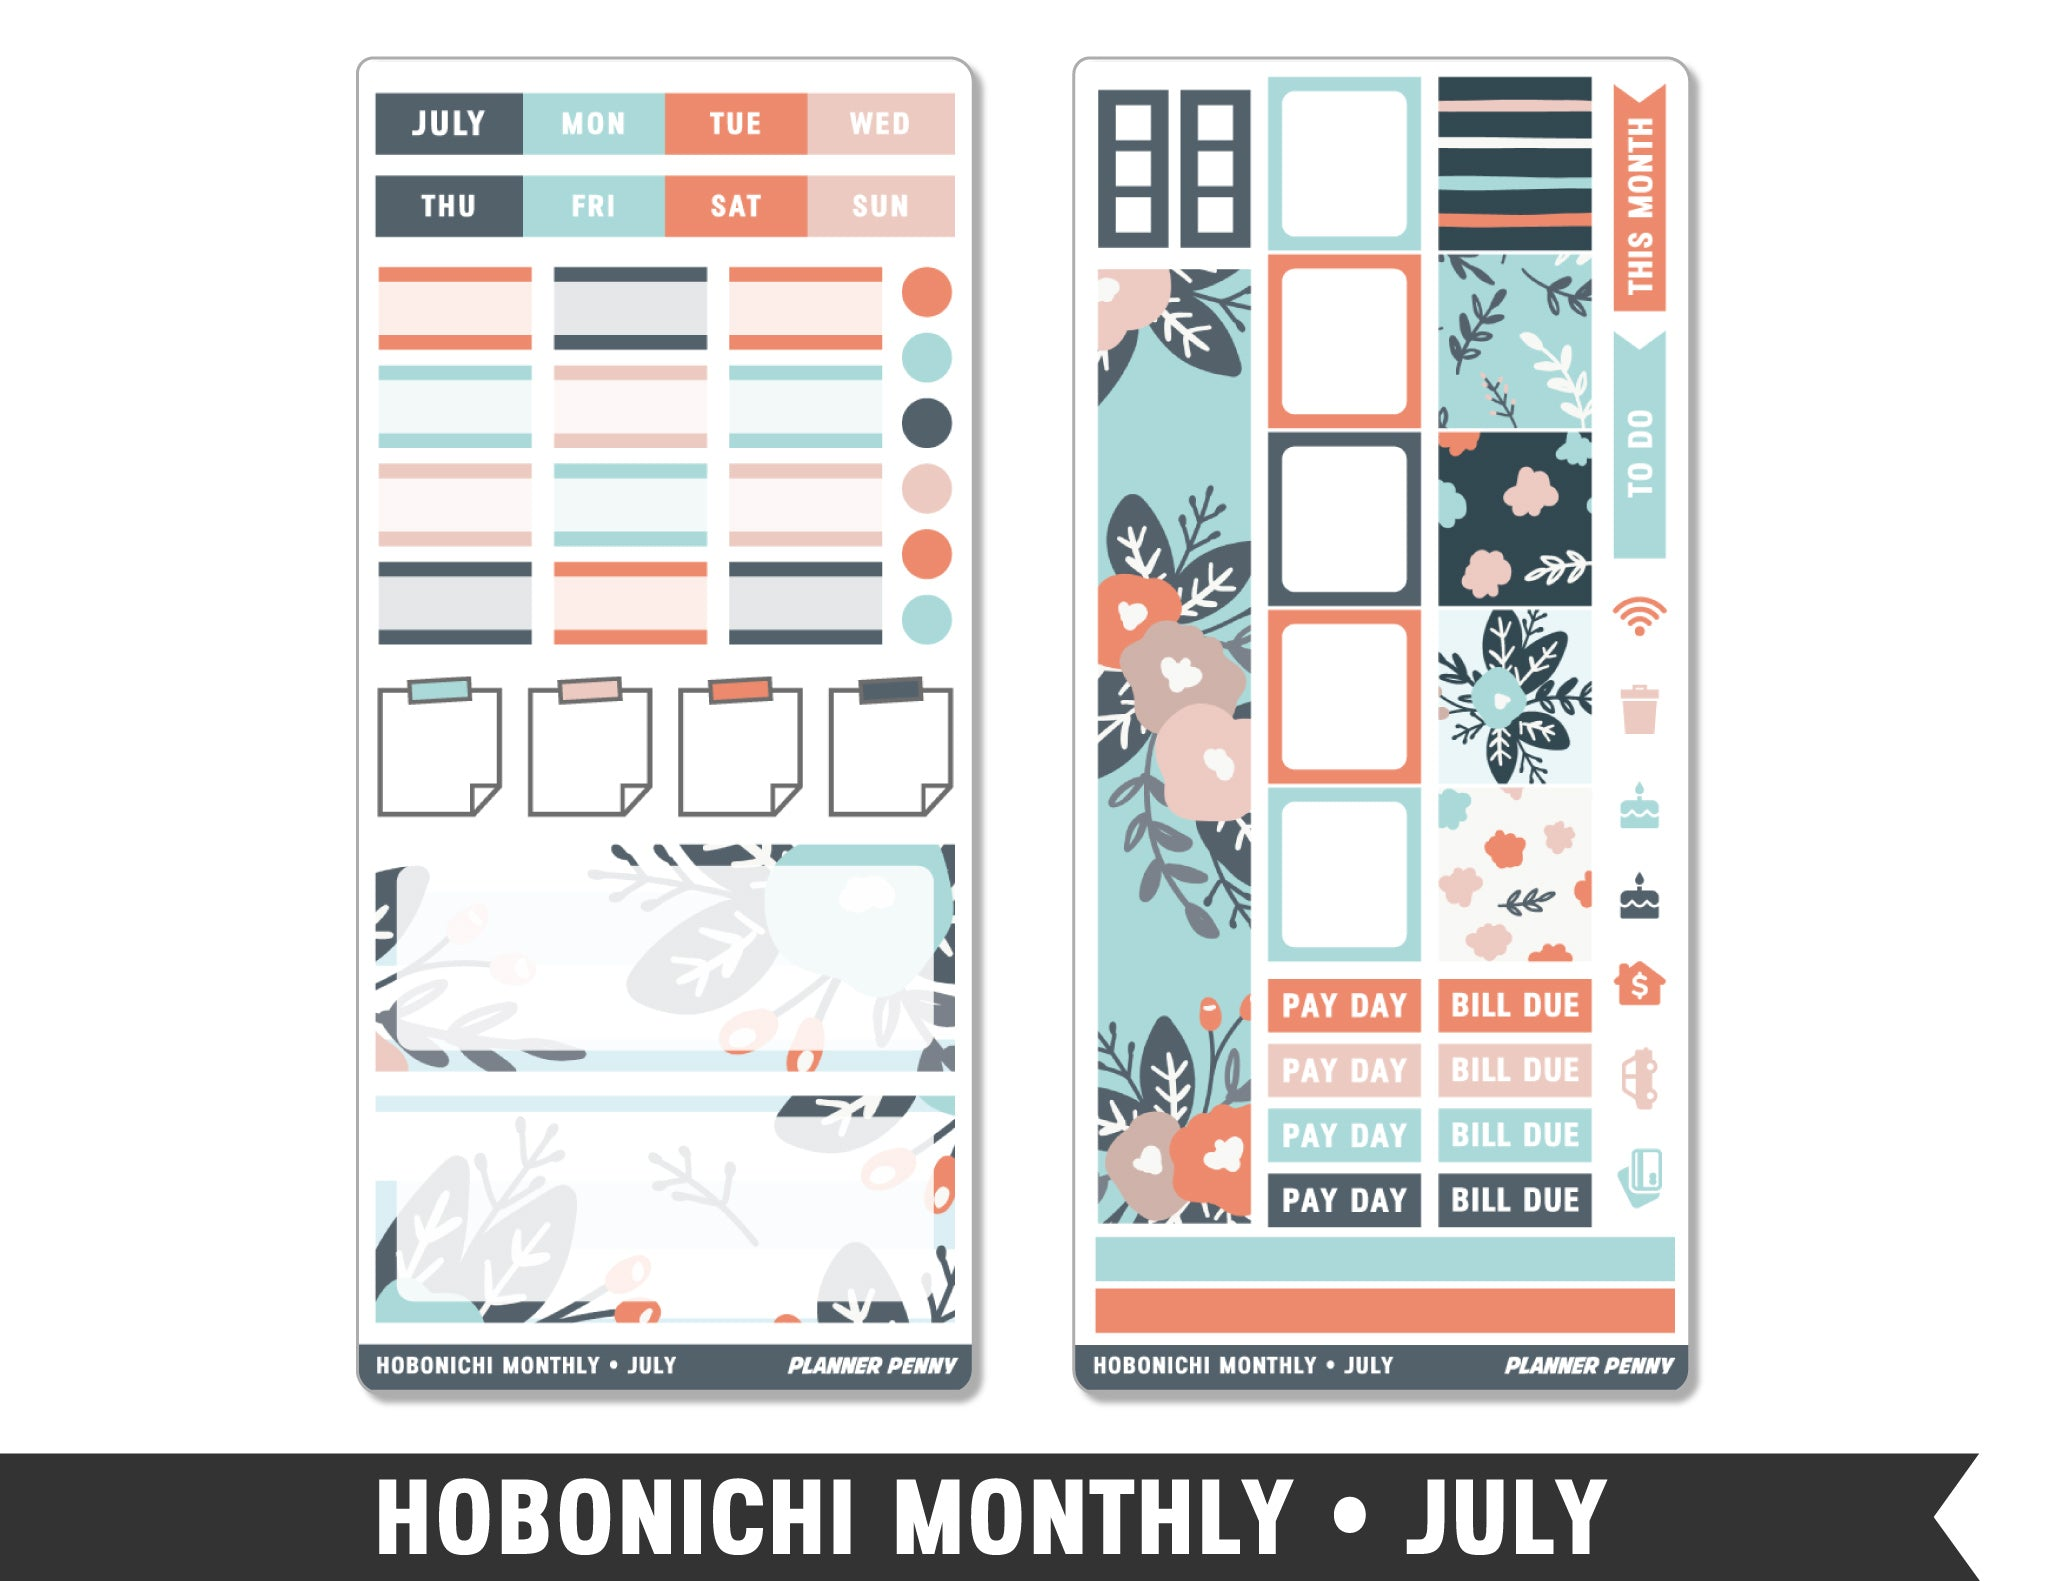 Hobonichi Monthly • July • Monthly Spread Planner Stickers - Planner Penny